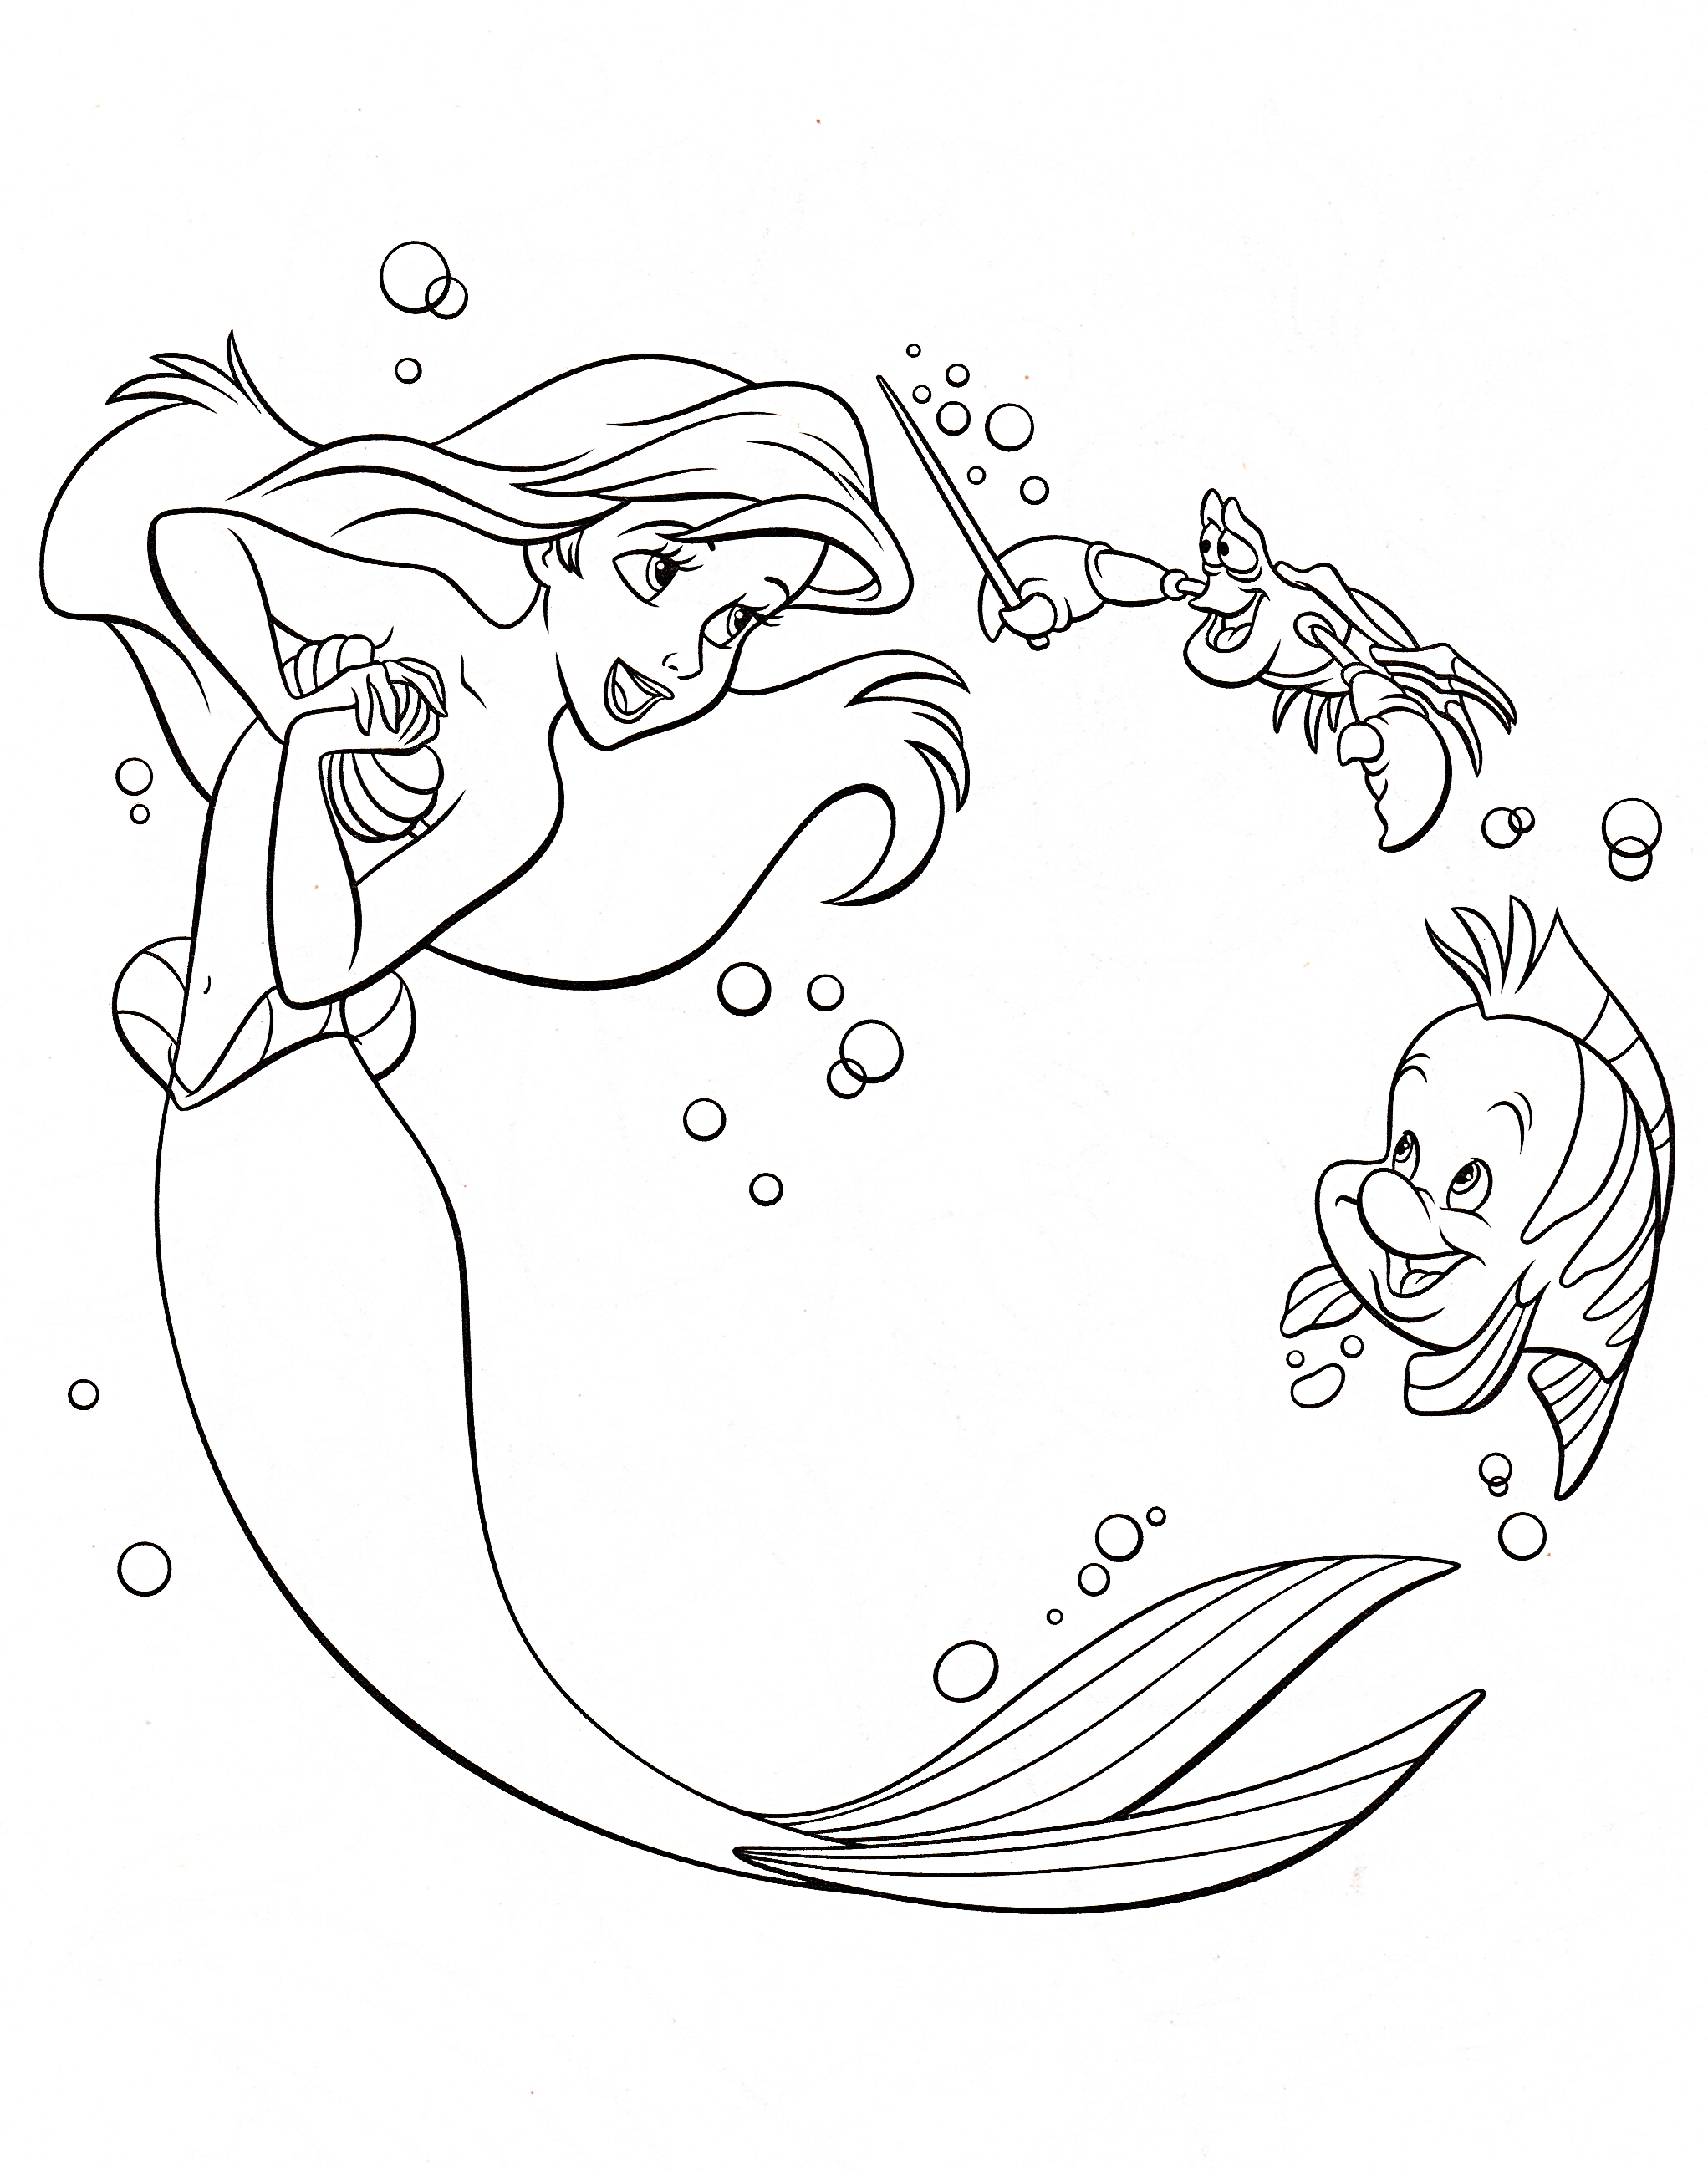 Flounder Coloring Pages From The Little Mermaid At